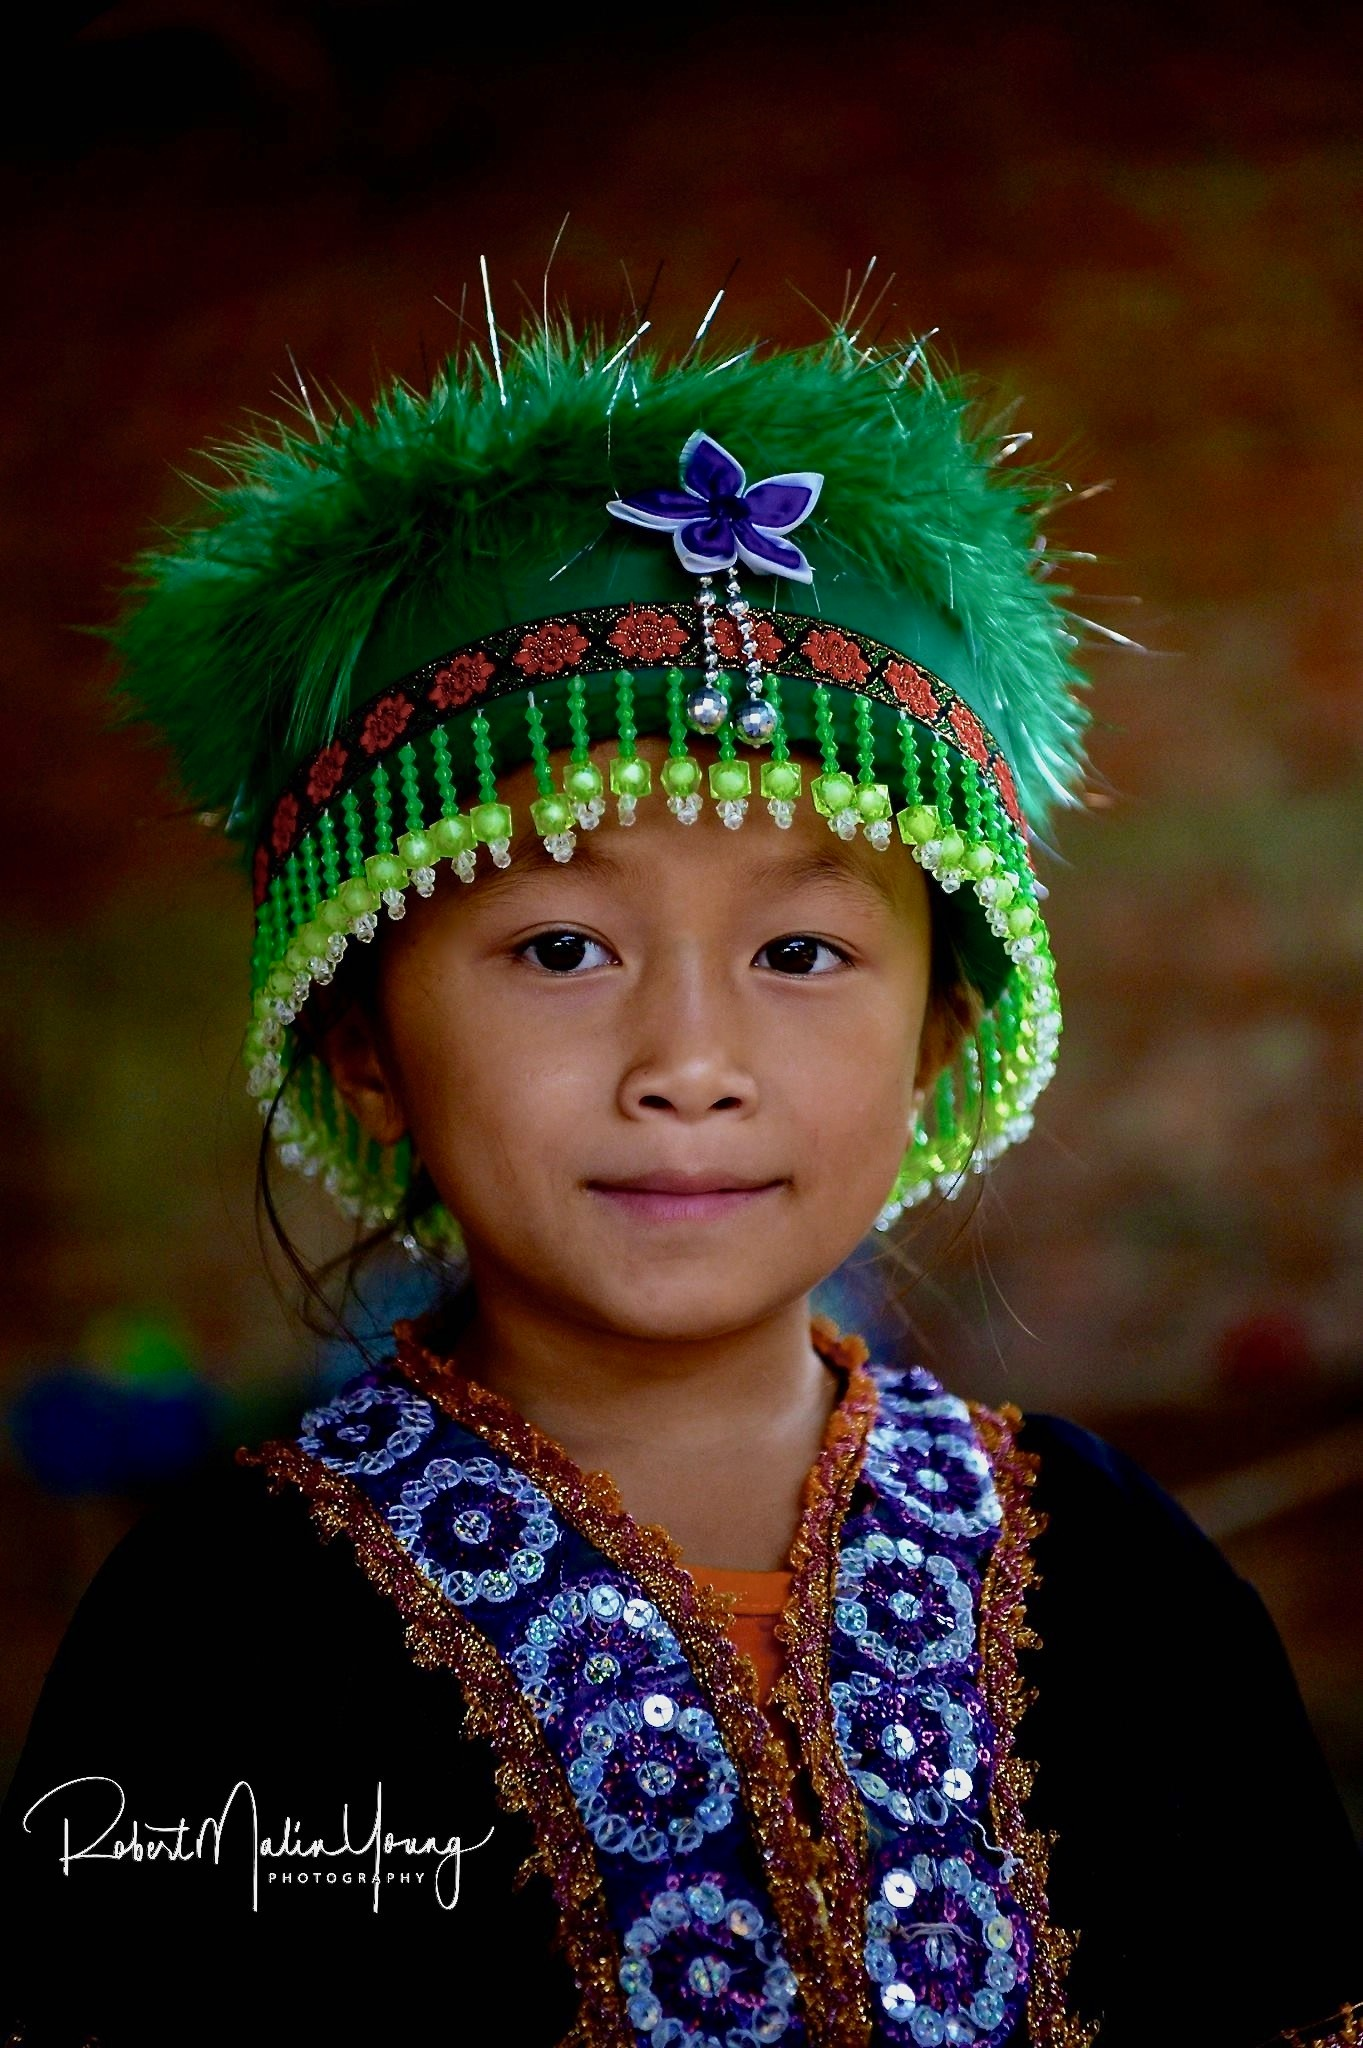 The soft beauty of the hill tribe children - Laos 2019 by Robert Malin Young